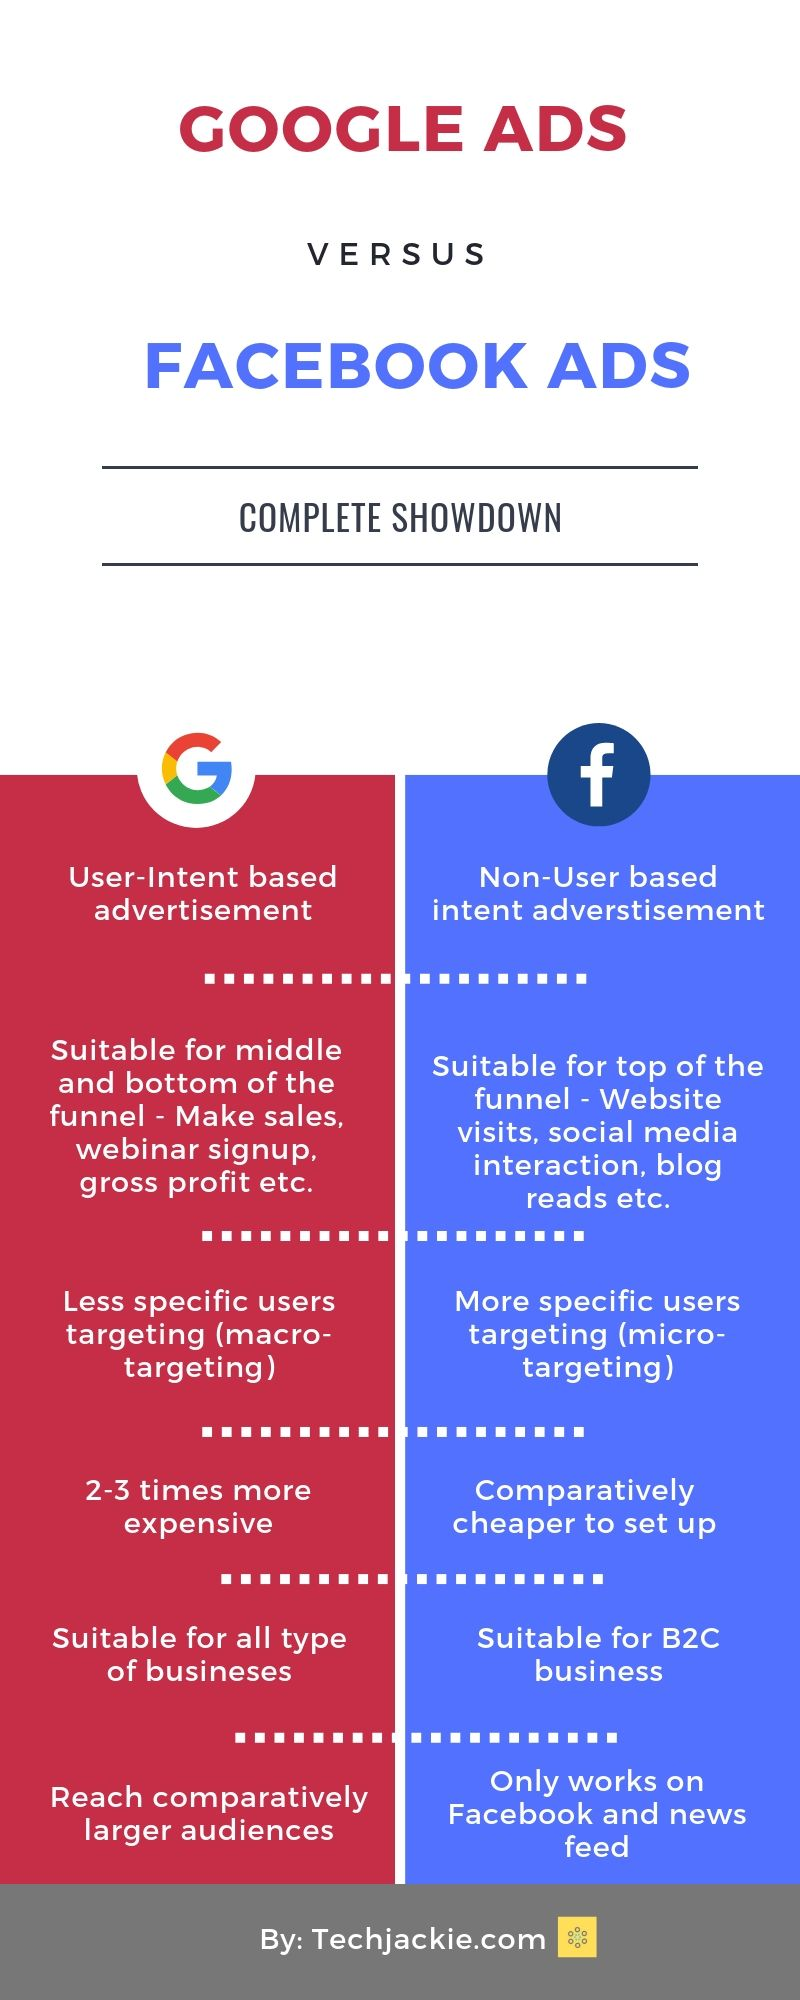 google adwords vs facebook ads - infographic